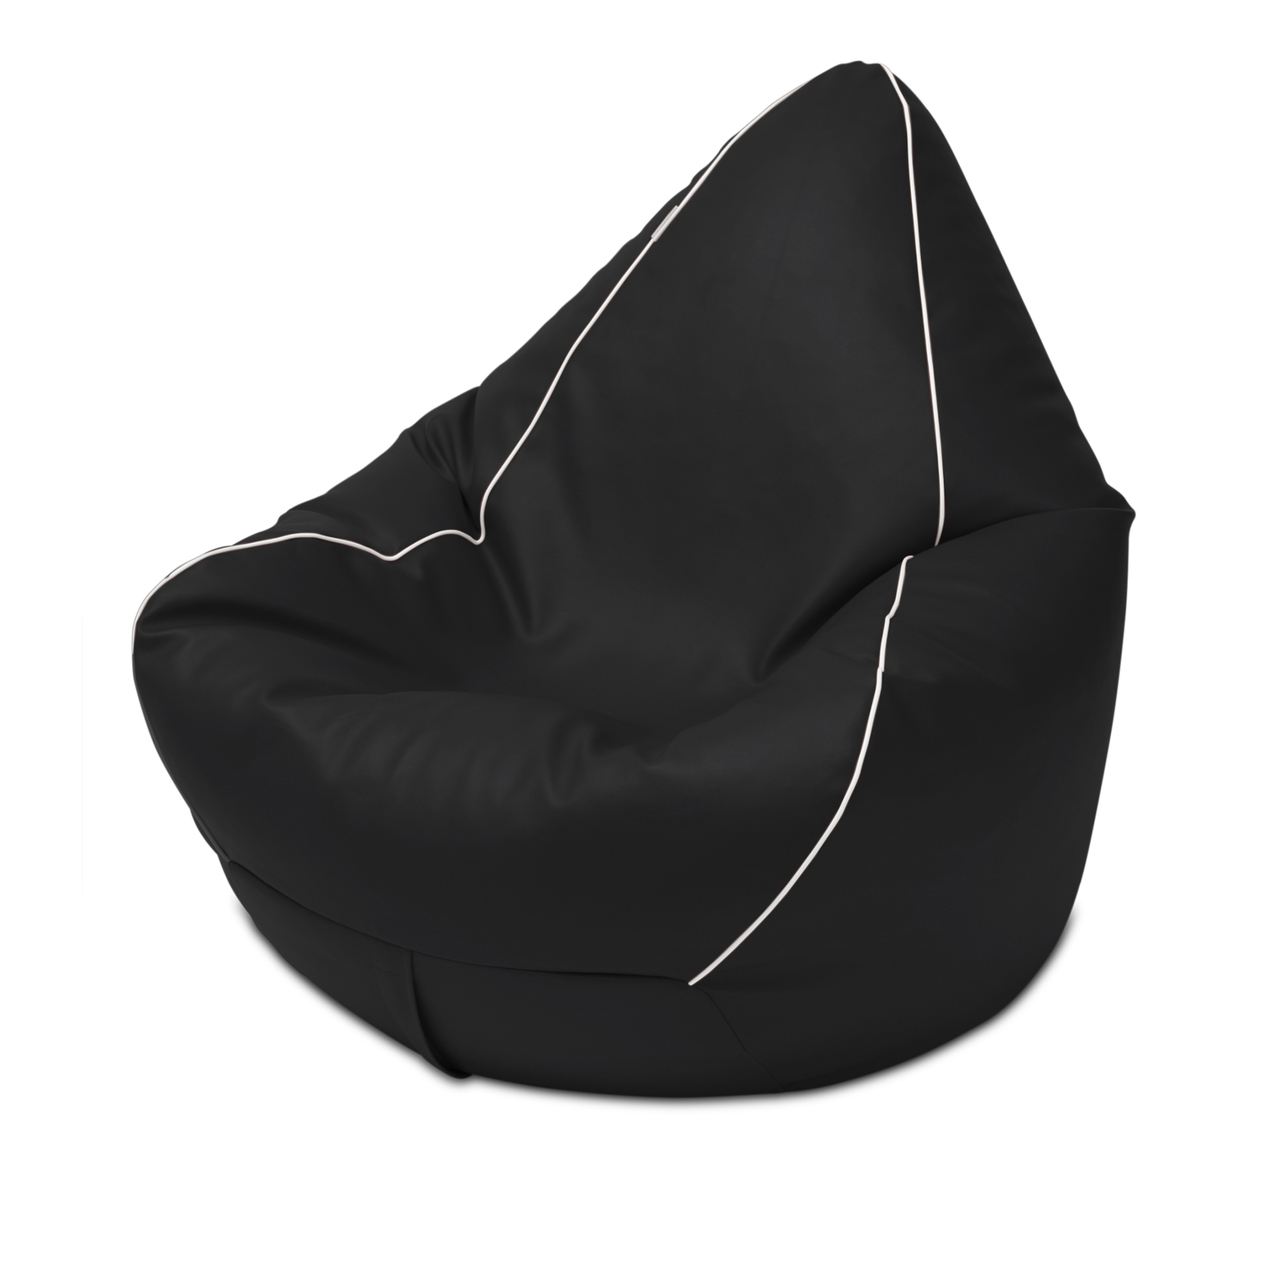 Retro Bean Bag in black